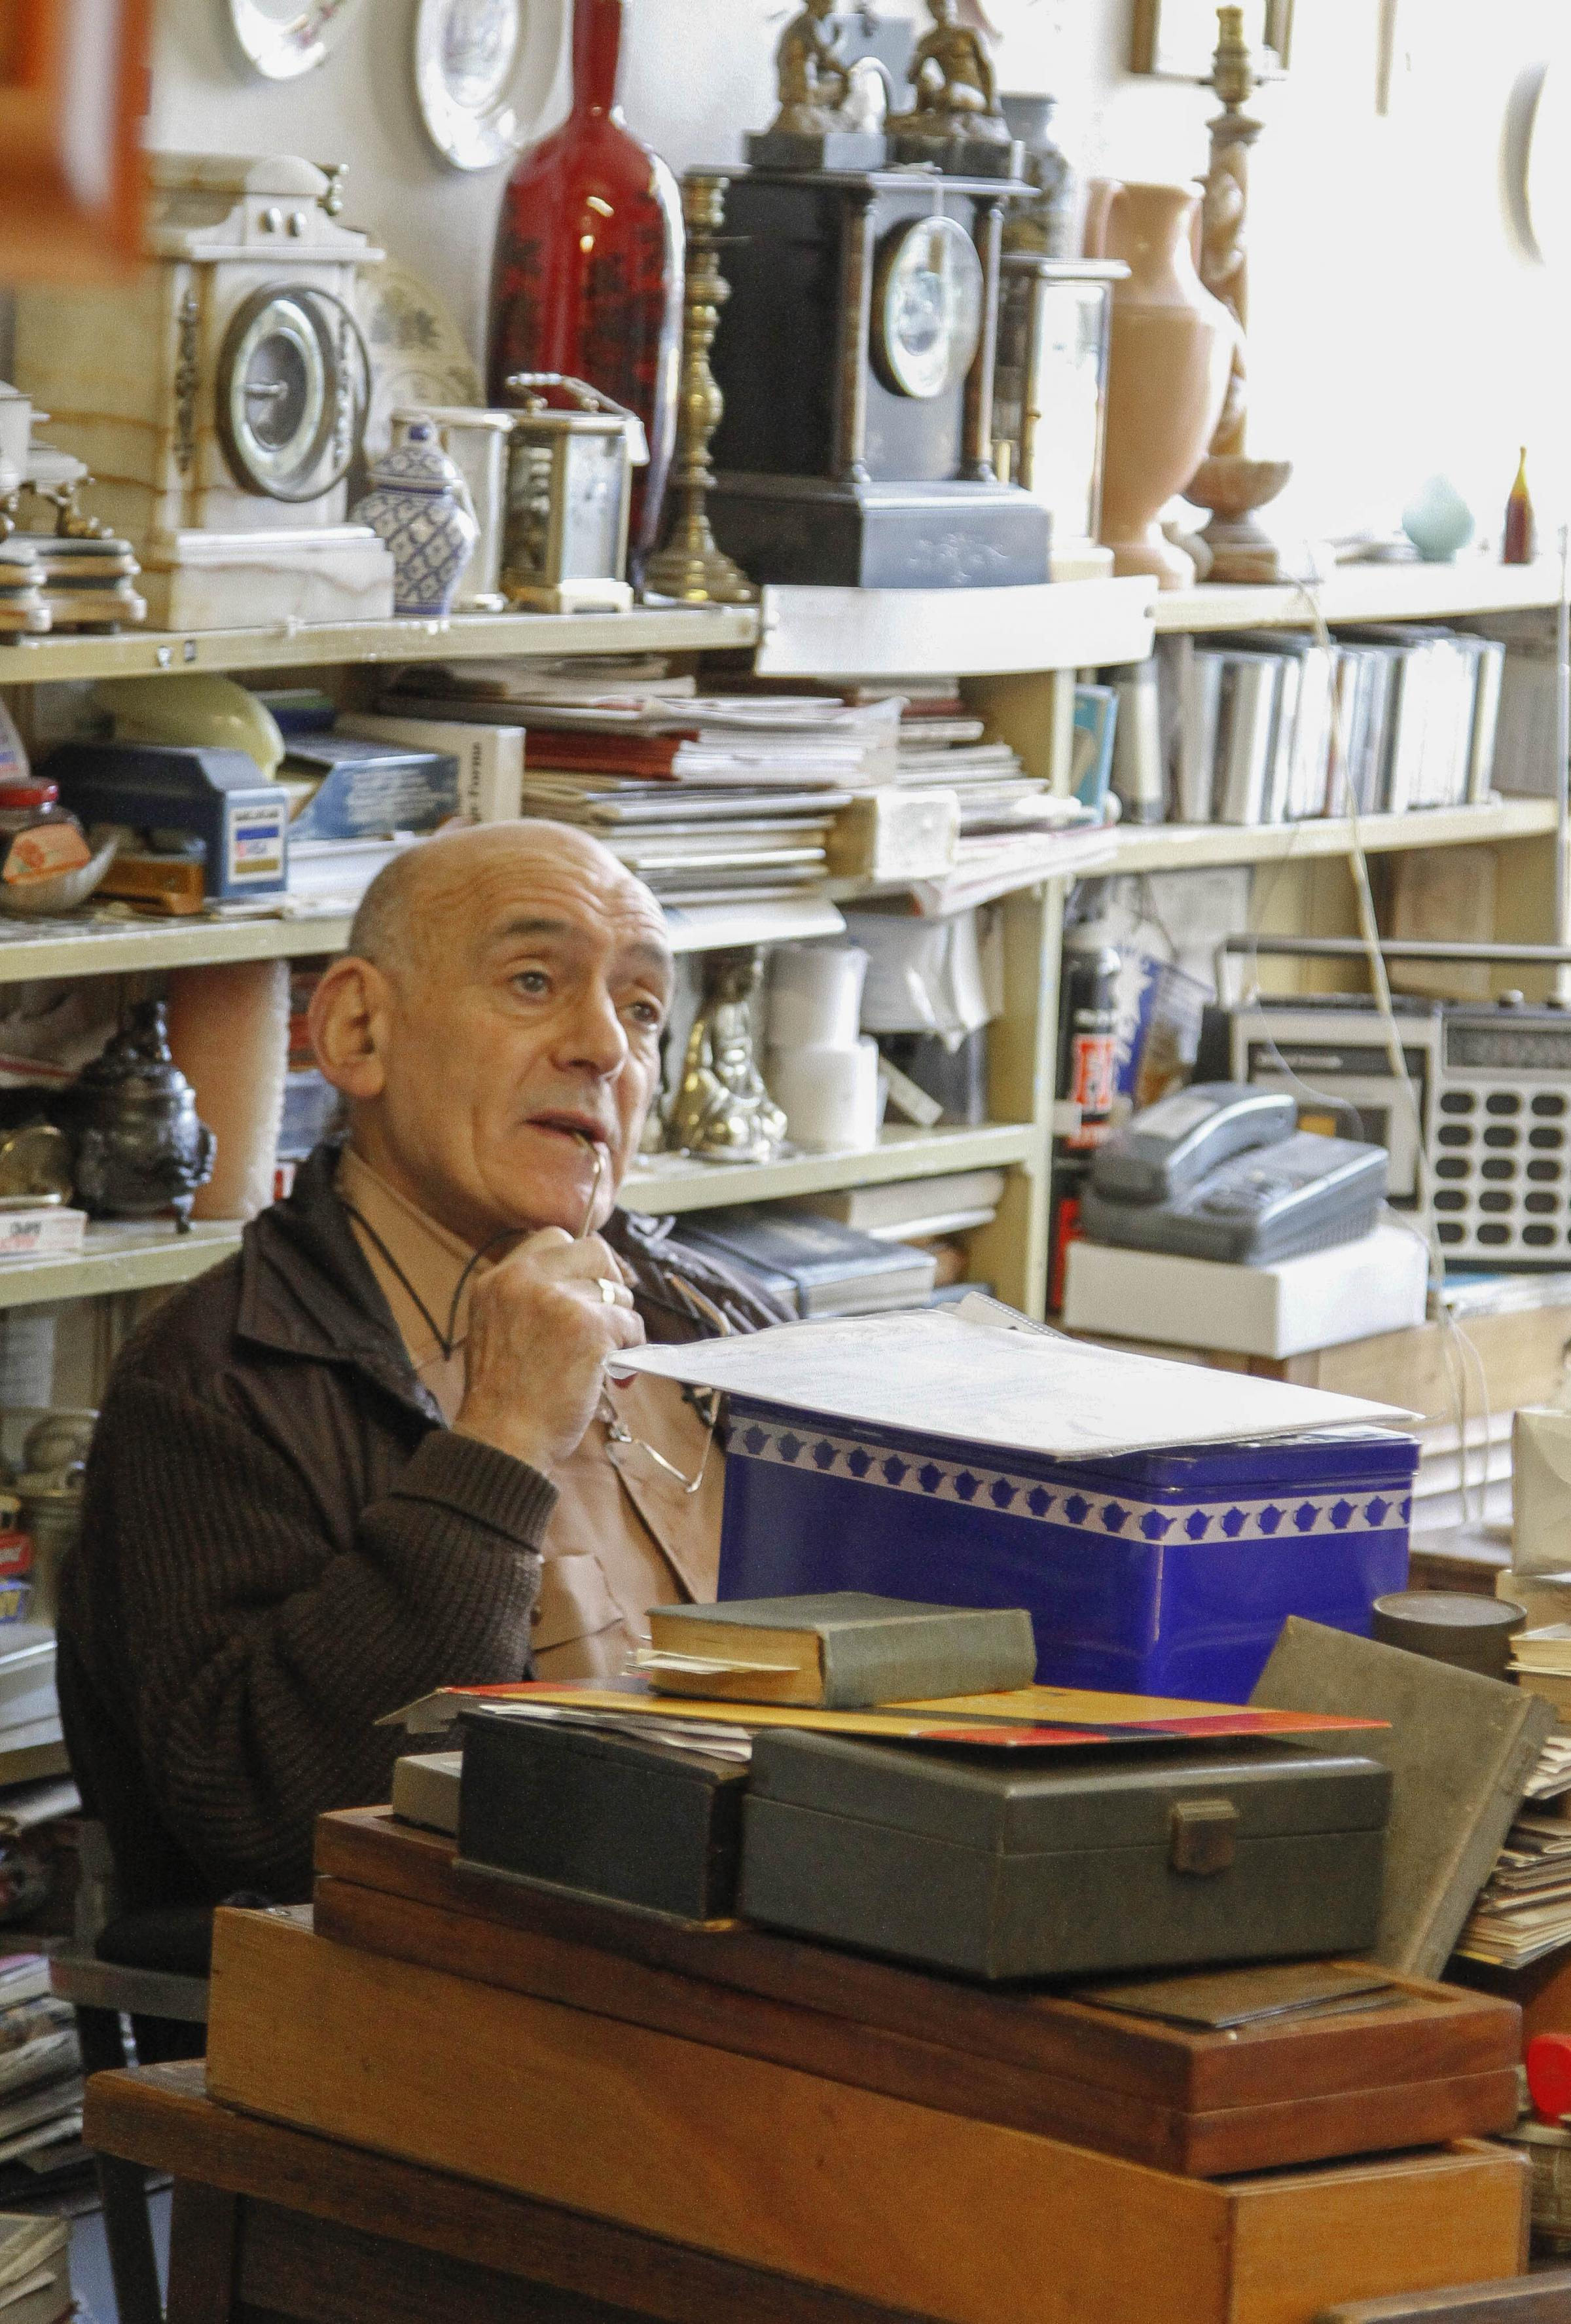 Sam Greenman in his antiques shop, Finchley Fine Art Galleries, which he ran for 35 years.